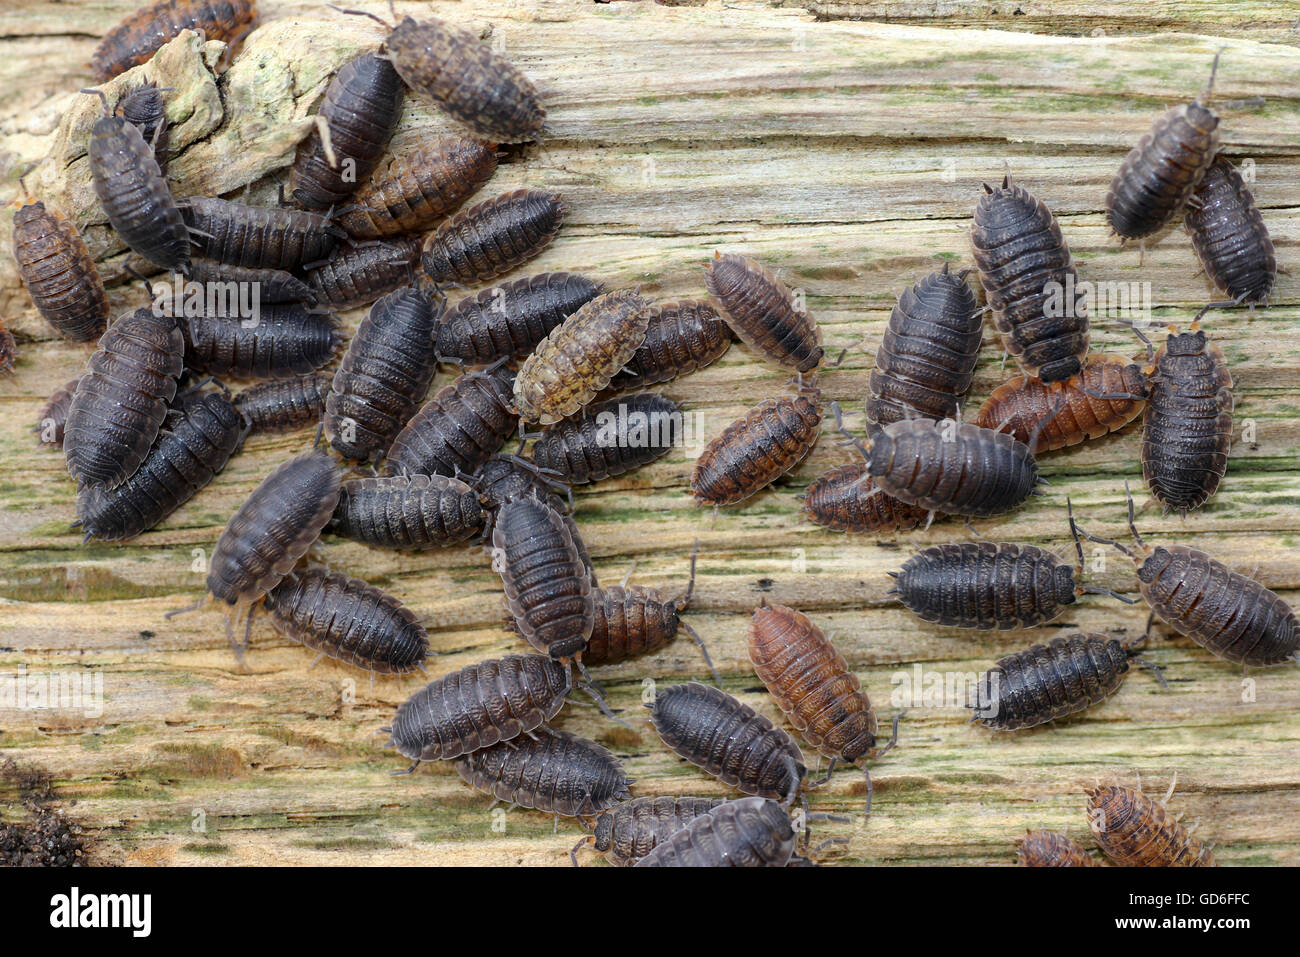 Common Striped Woodlouse Philoscia muscorum and Common Shiny Woodlouse Oniscus asellus - Stock Image